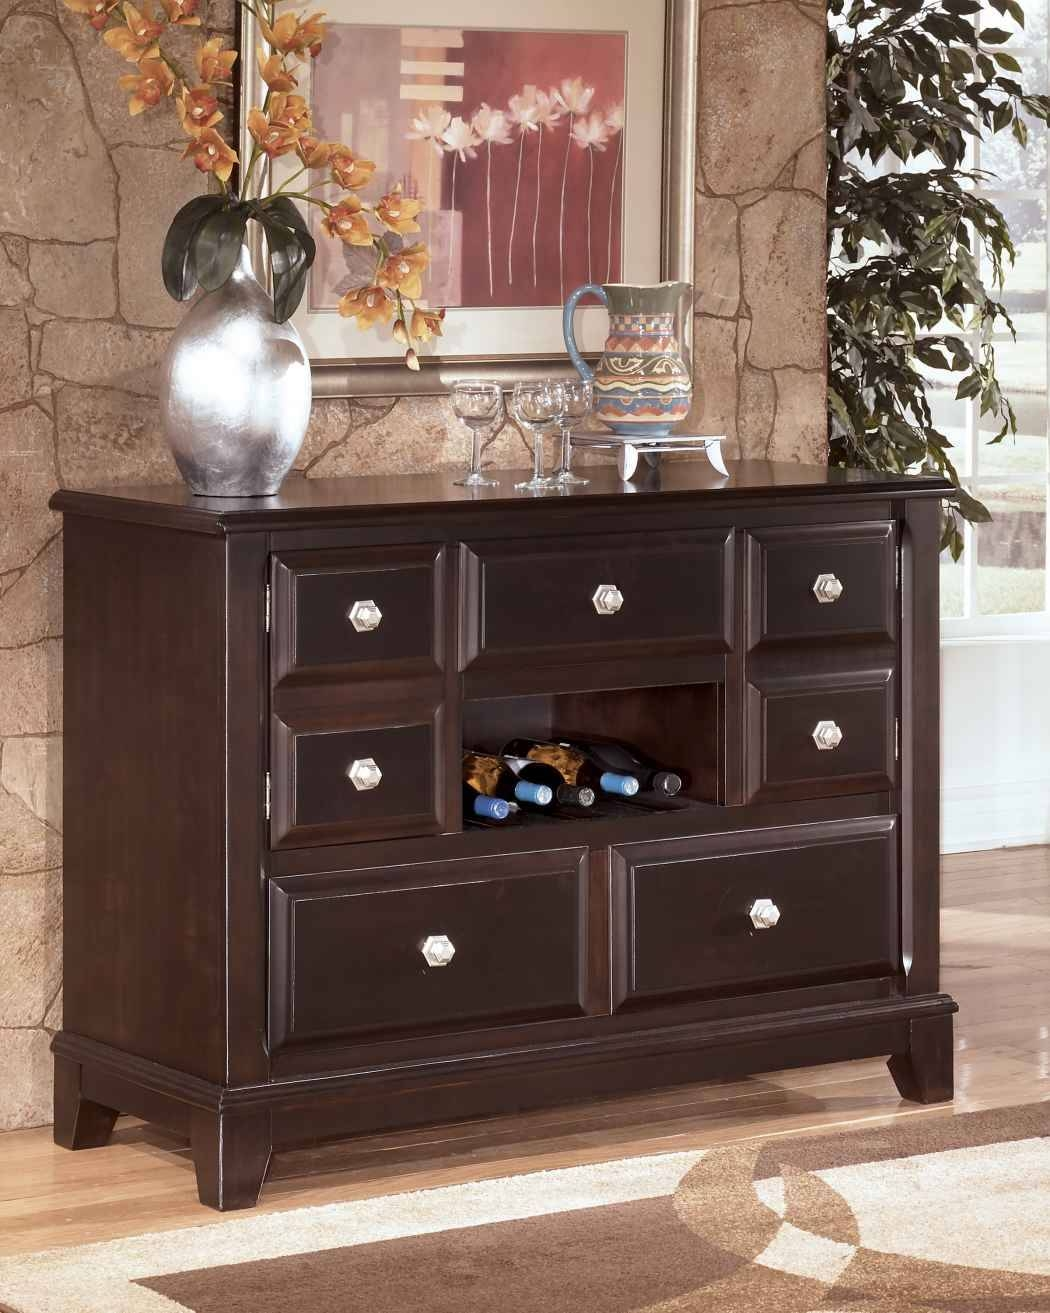 Sideboards: Astounding Buffet Tables For Dining Room China Within Dining Room Sideboards And Buffet Tables (#14 of 15)